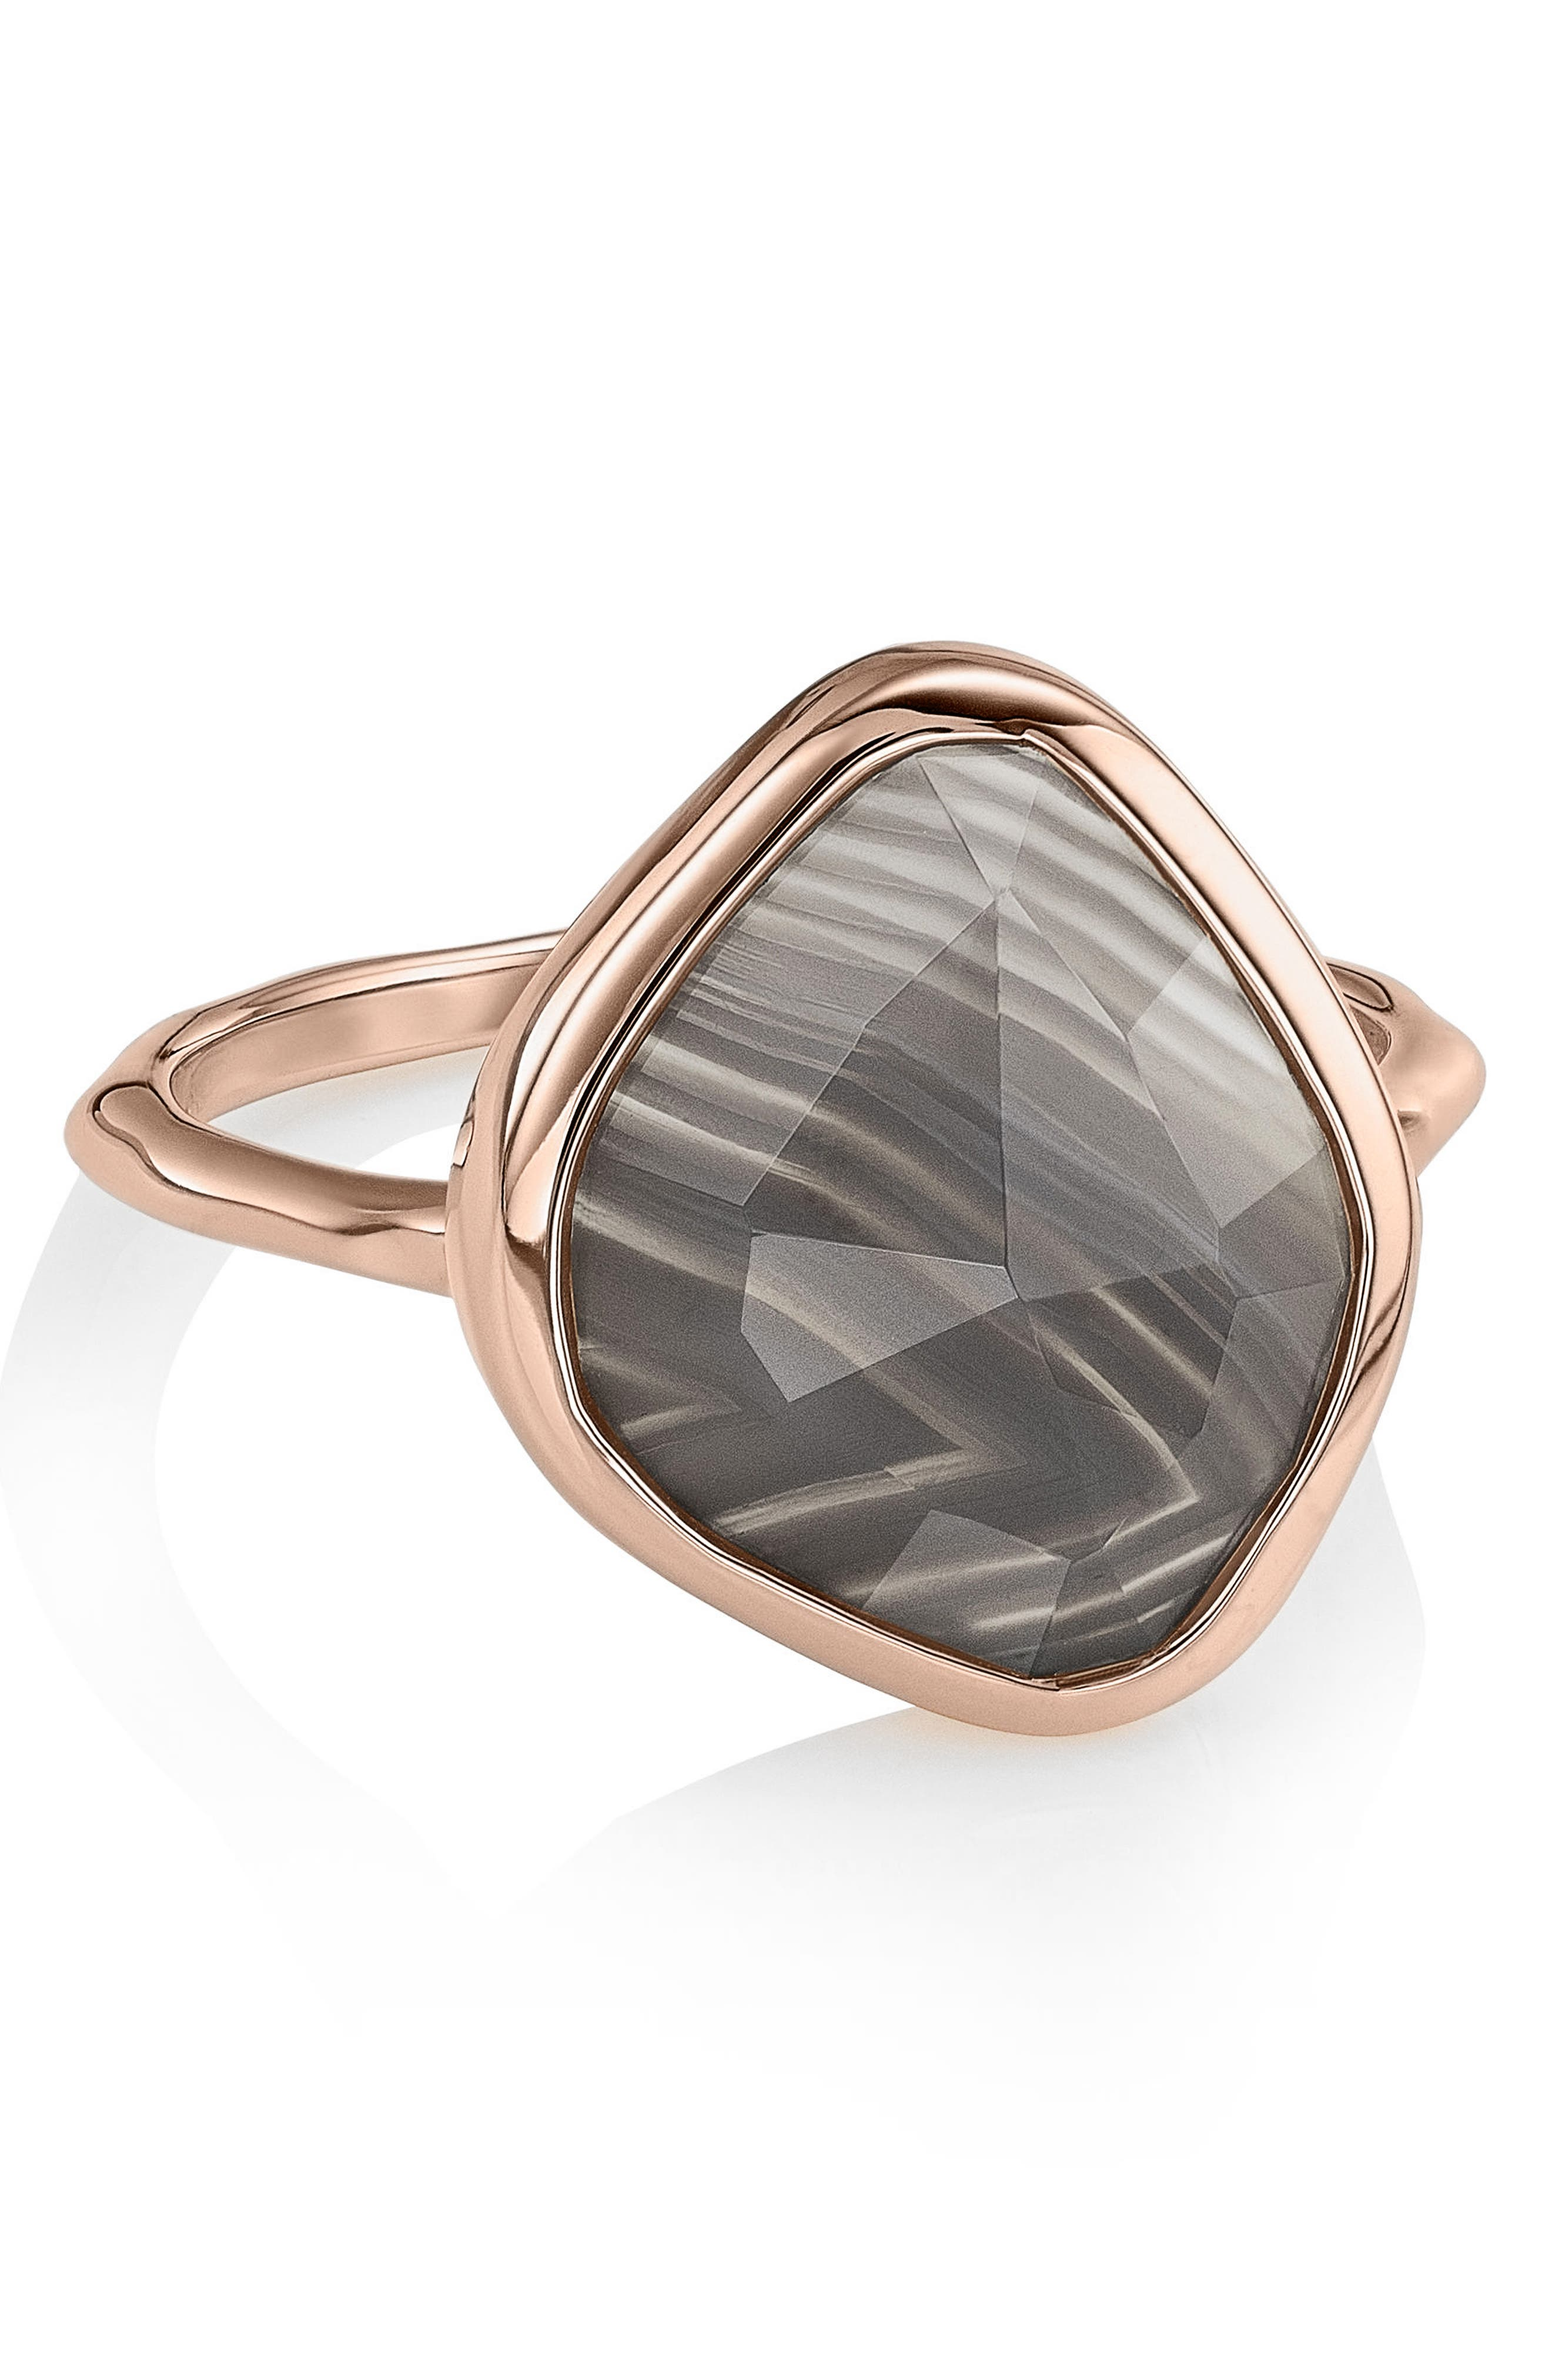 Siren Nugget Semiprecious Stone Ring,                             Main thumbnail 1, color,                             020